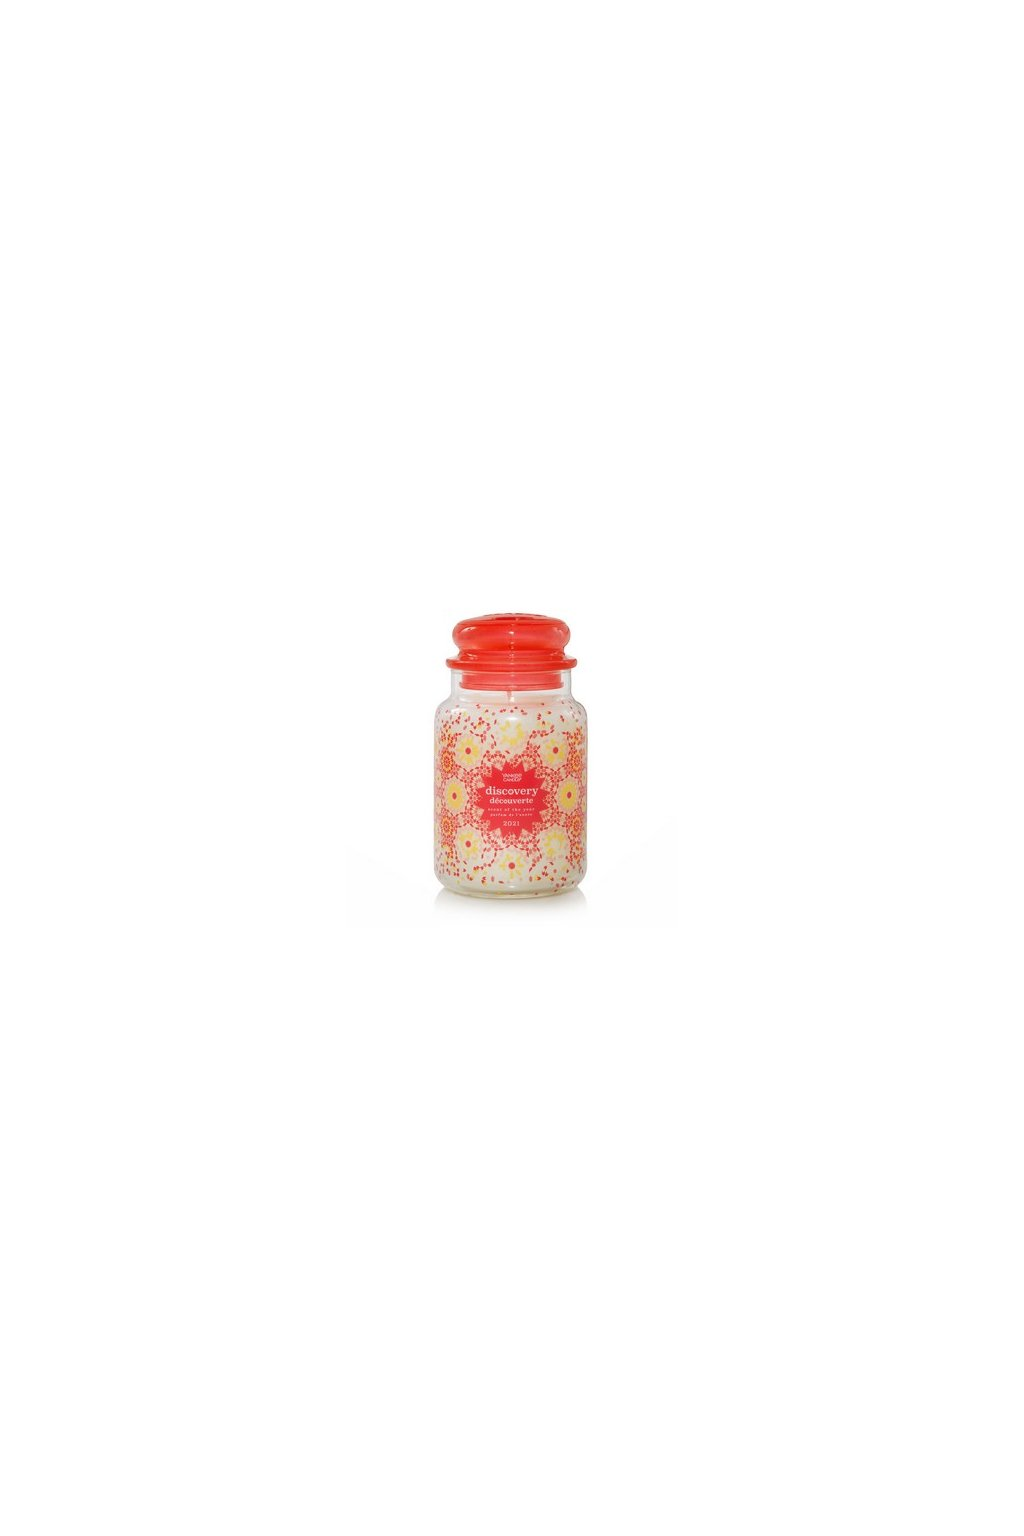 YANKEE CANDLE DISCOVERY 2021 609g